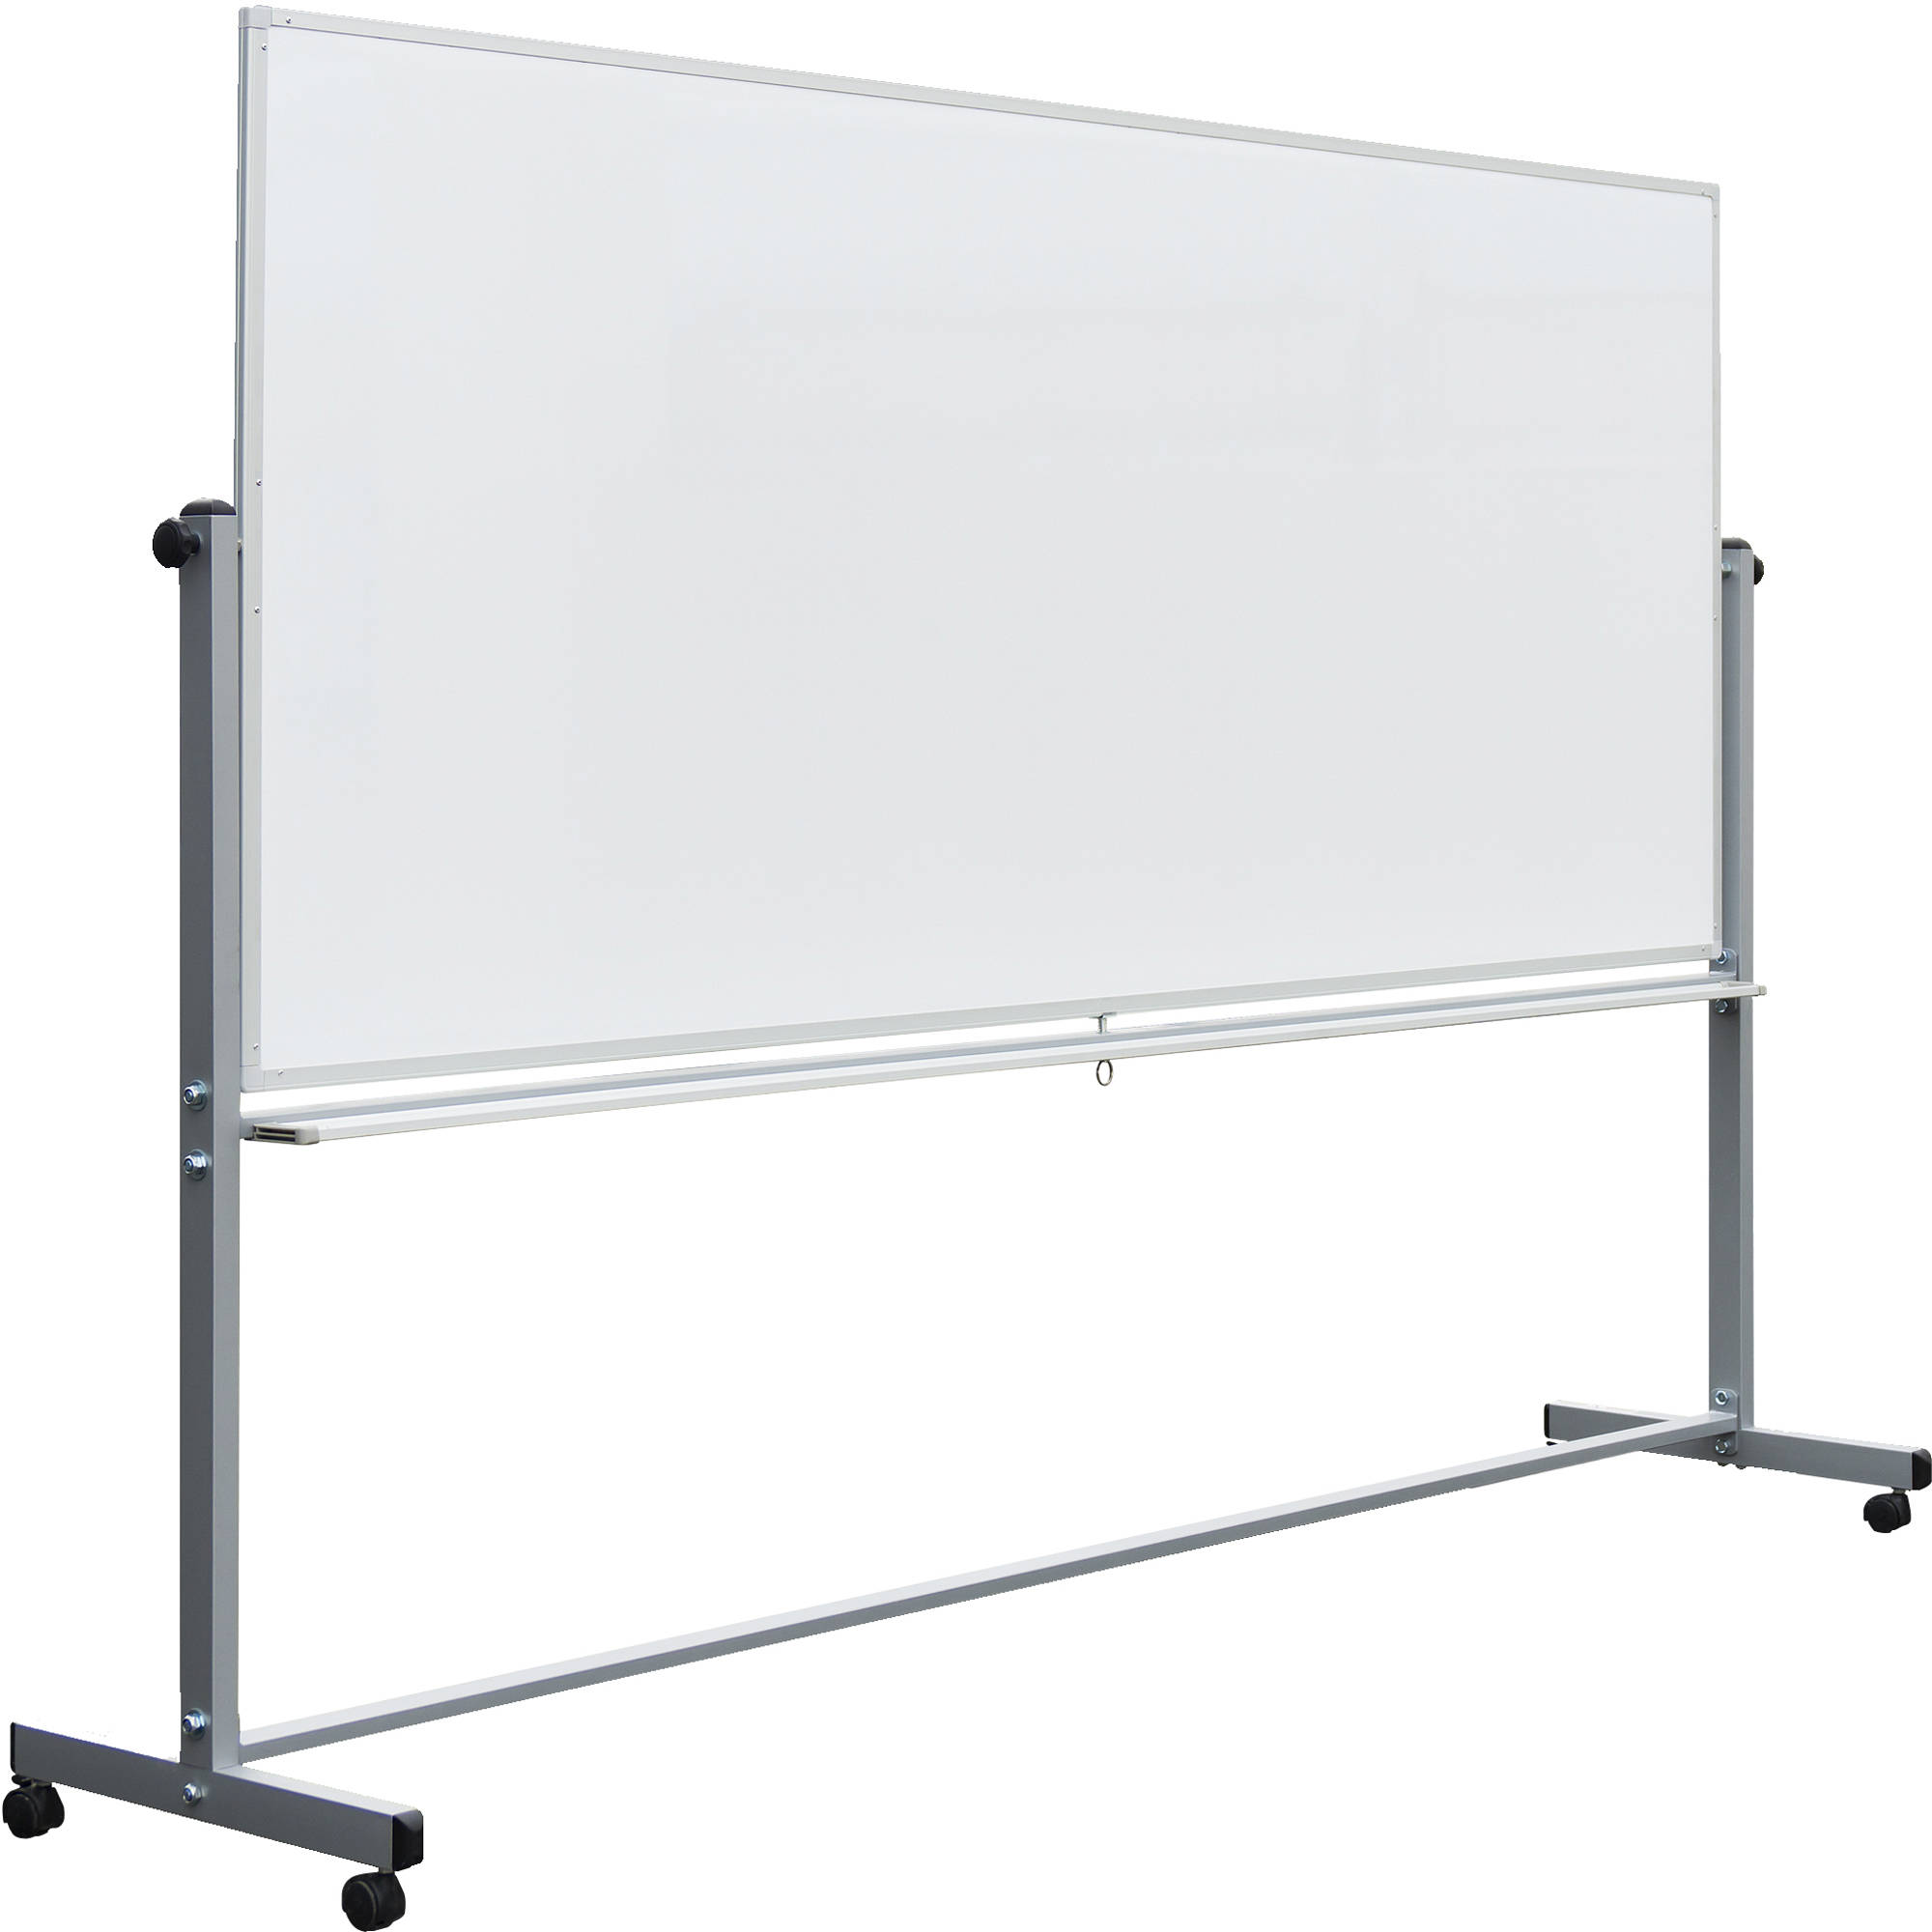 luxor 96 x 40 double sided magnetic whiteboard - Magnetic White Board